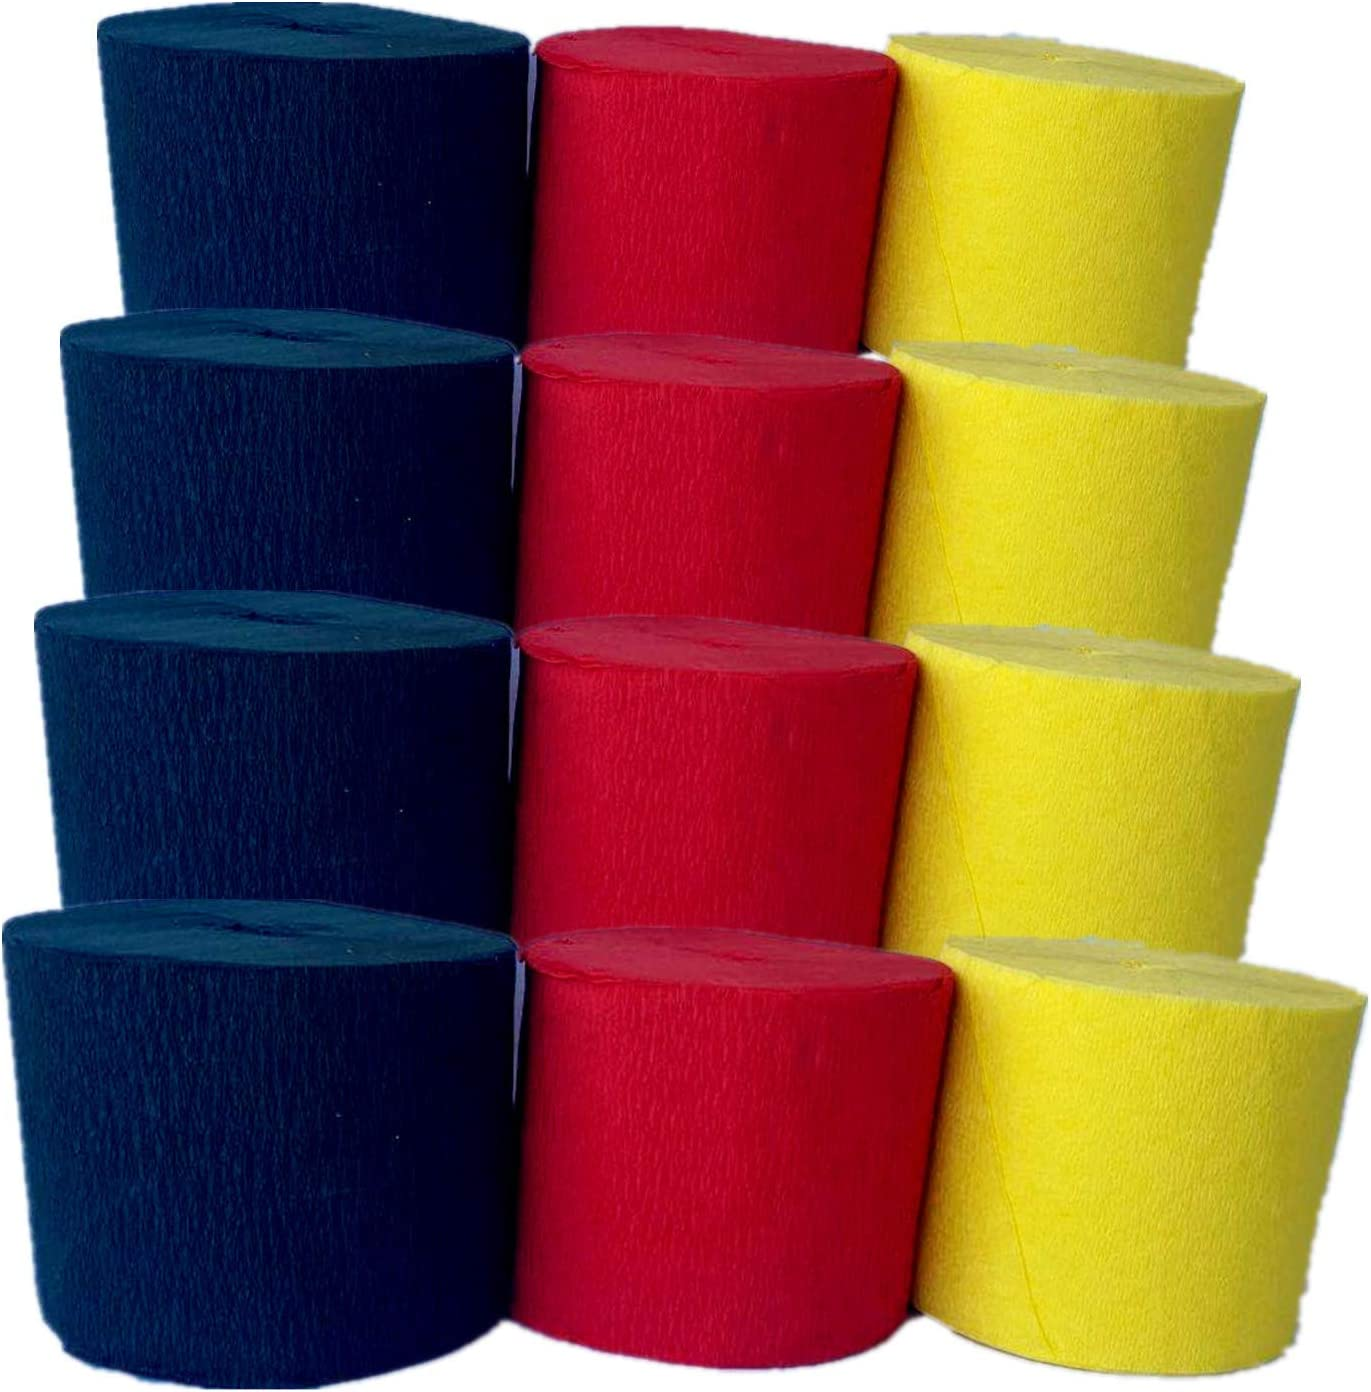 Fonder Mols Soldering 12 Rolls Crepe Paper Red OFFicial mail order fo Yellow Black Streamers